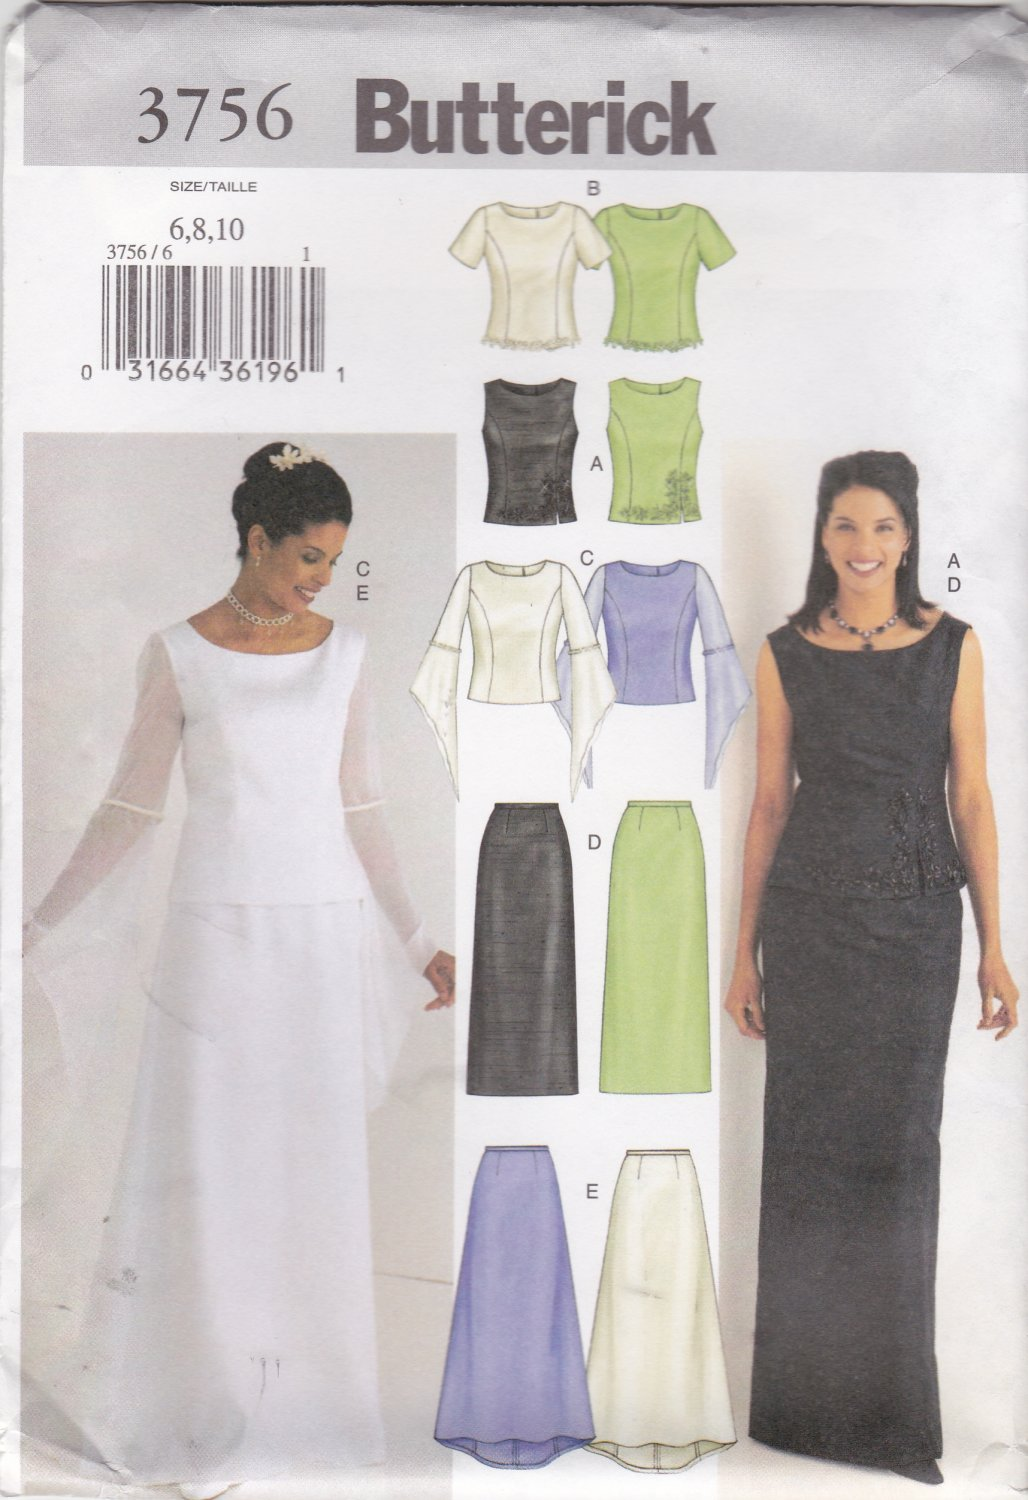 Butterick Sewing Pattern 3756 Misses Size 6-10 Easy Wedding Gown Formal 2-Piece Dress Top Skirt